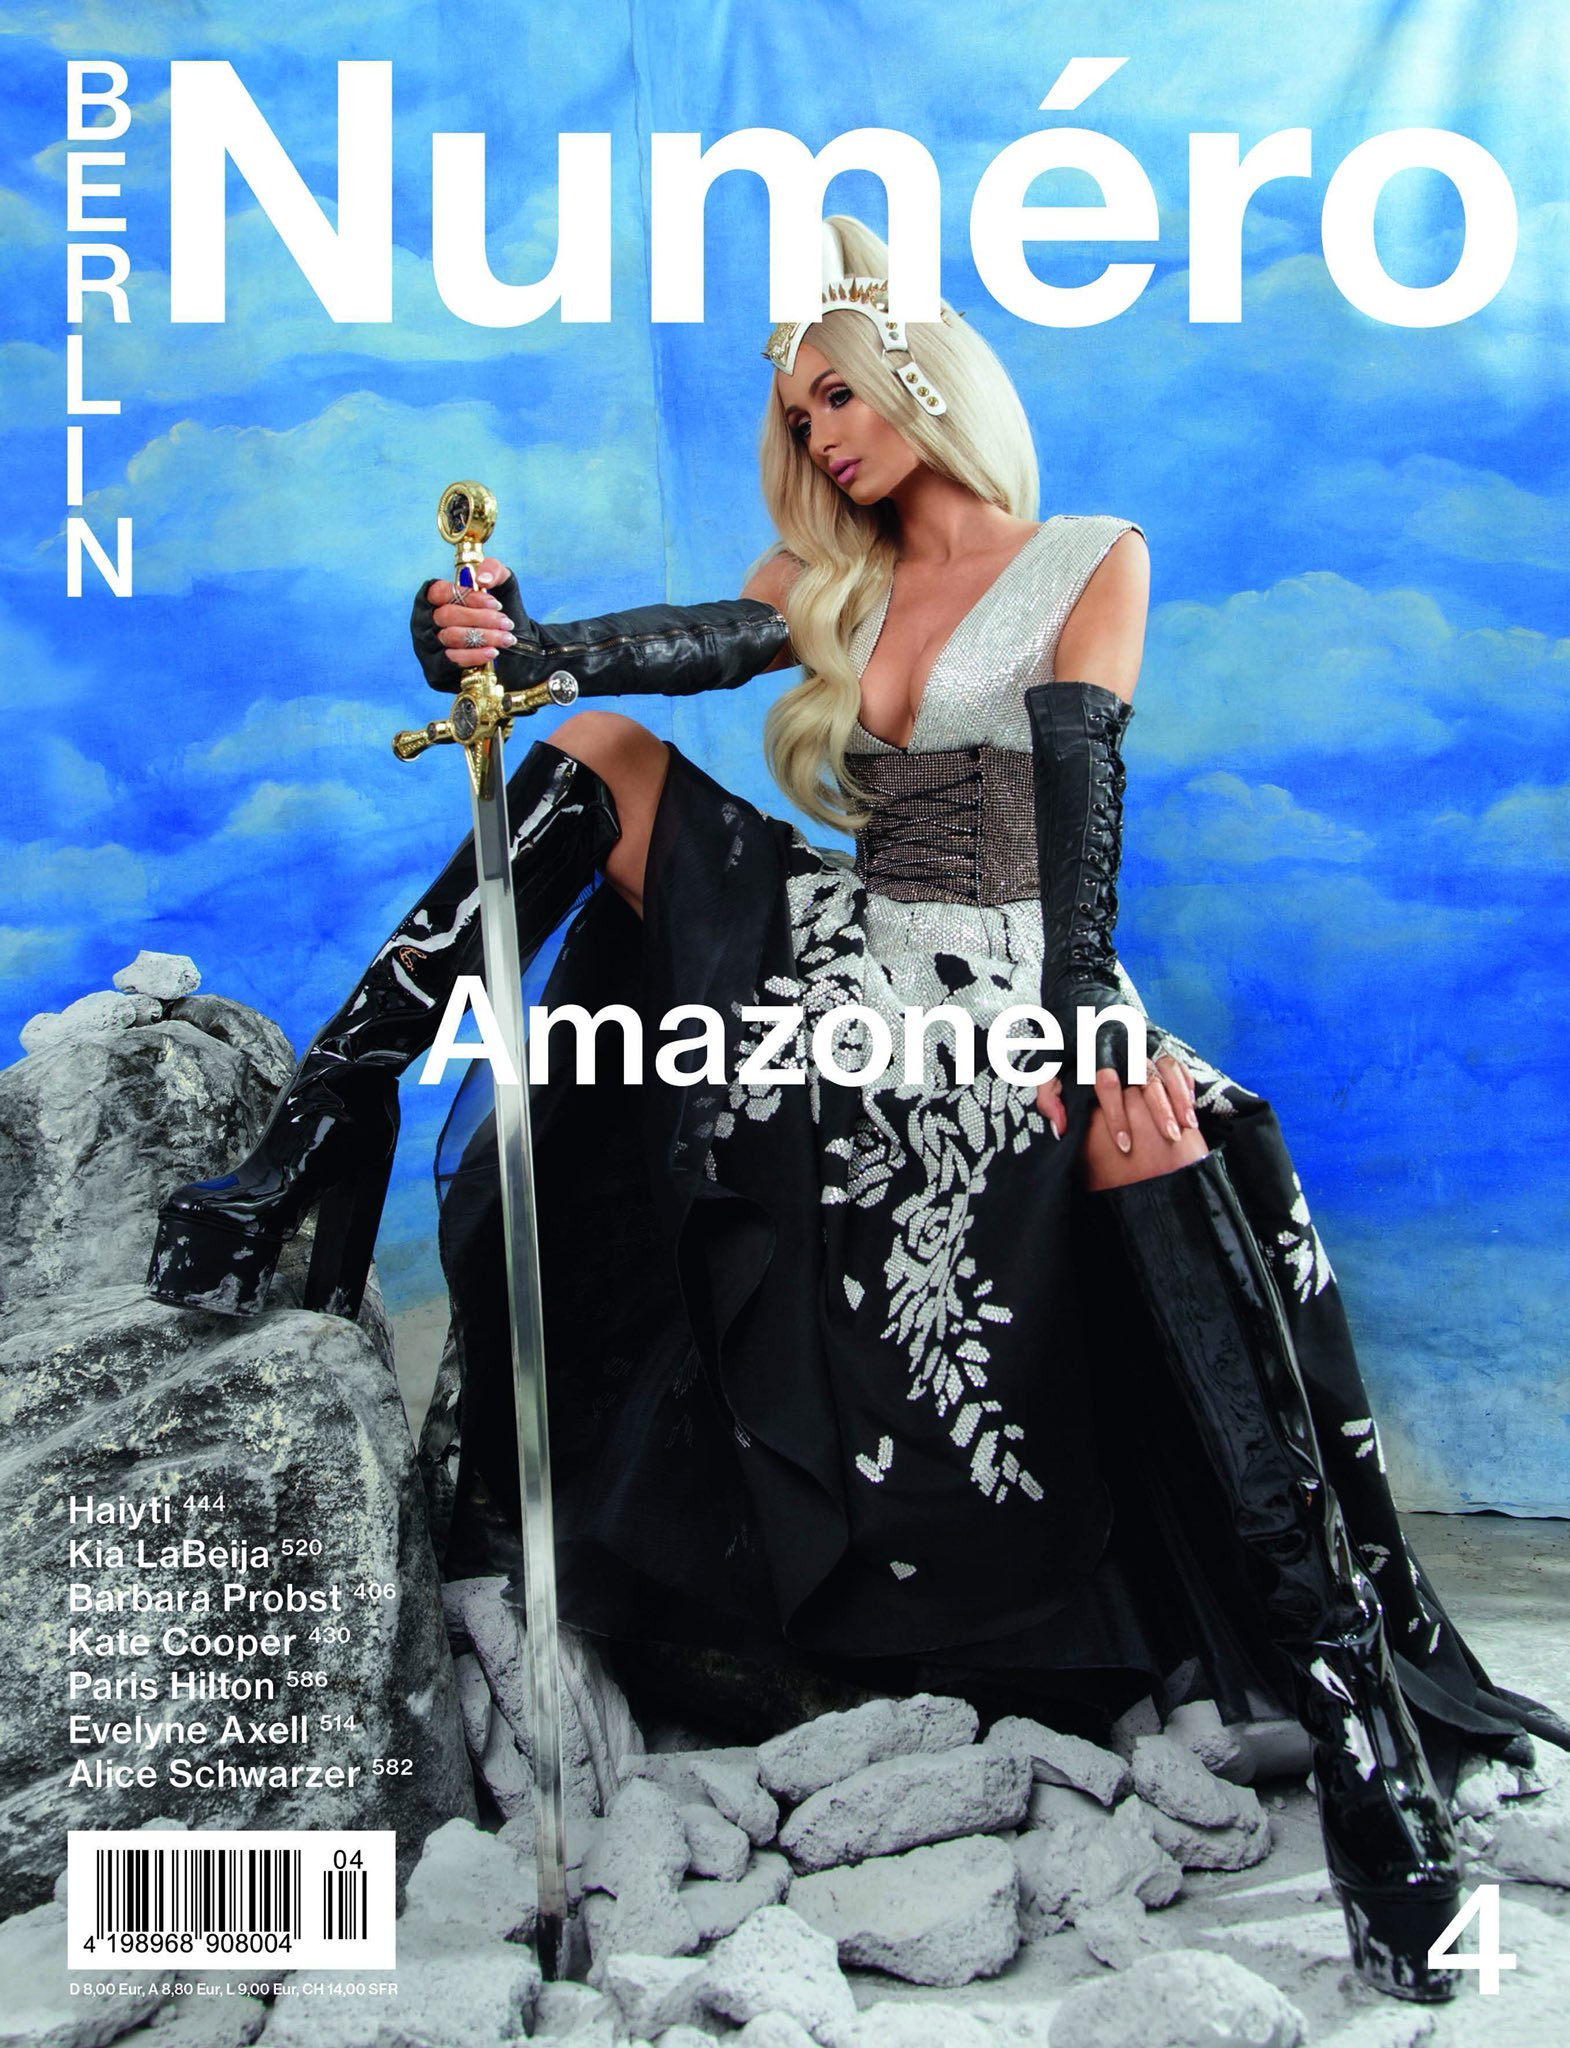 Loving my new @NumeroMagazine cover. ✨����✨ https://t.co/VzzMPzsoVh